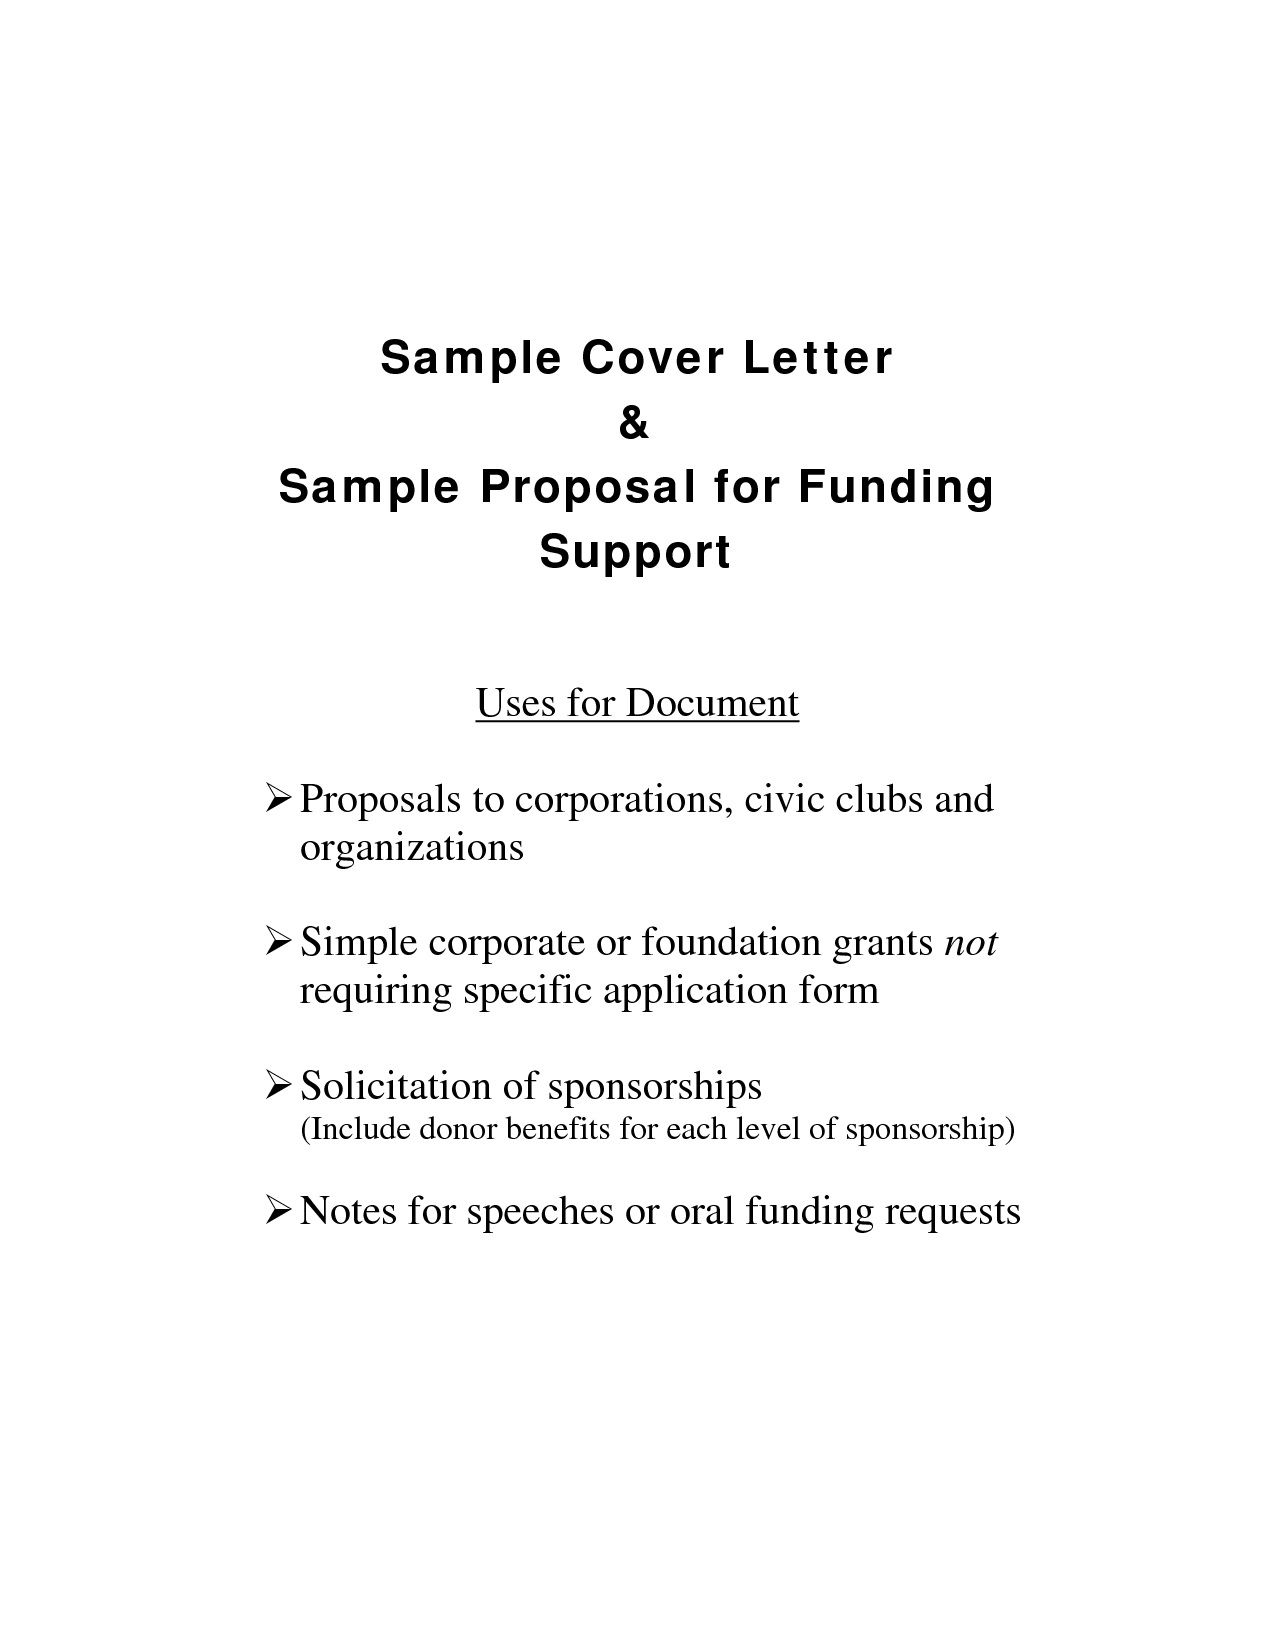 Grant Letter Of Support Sample from www.addictionary.org